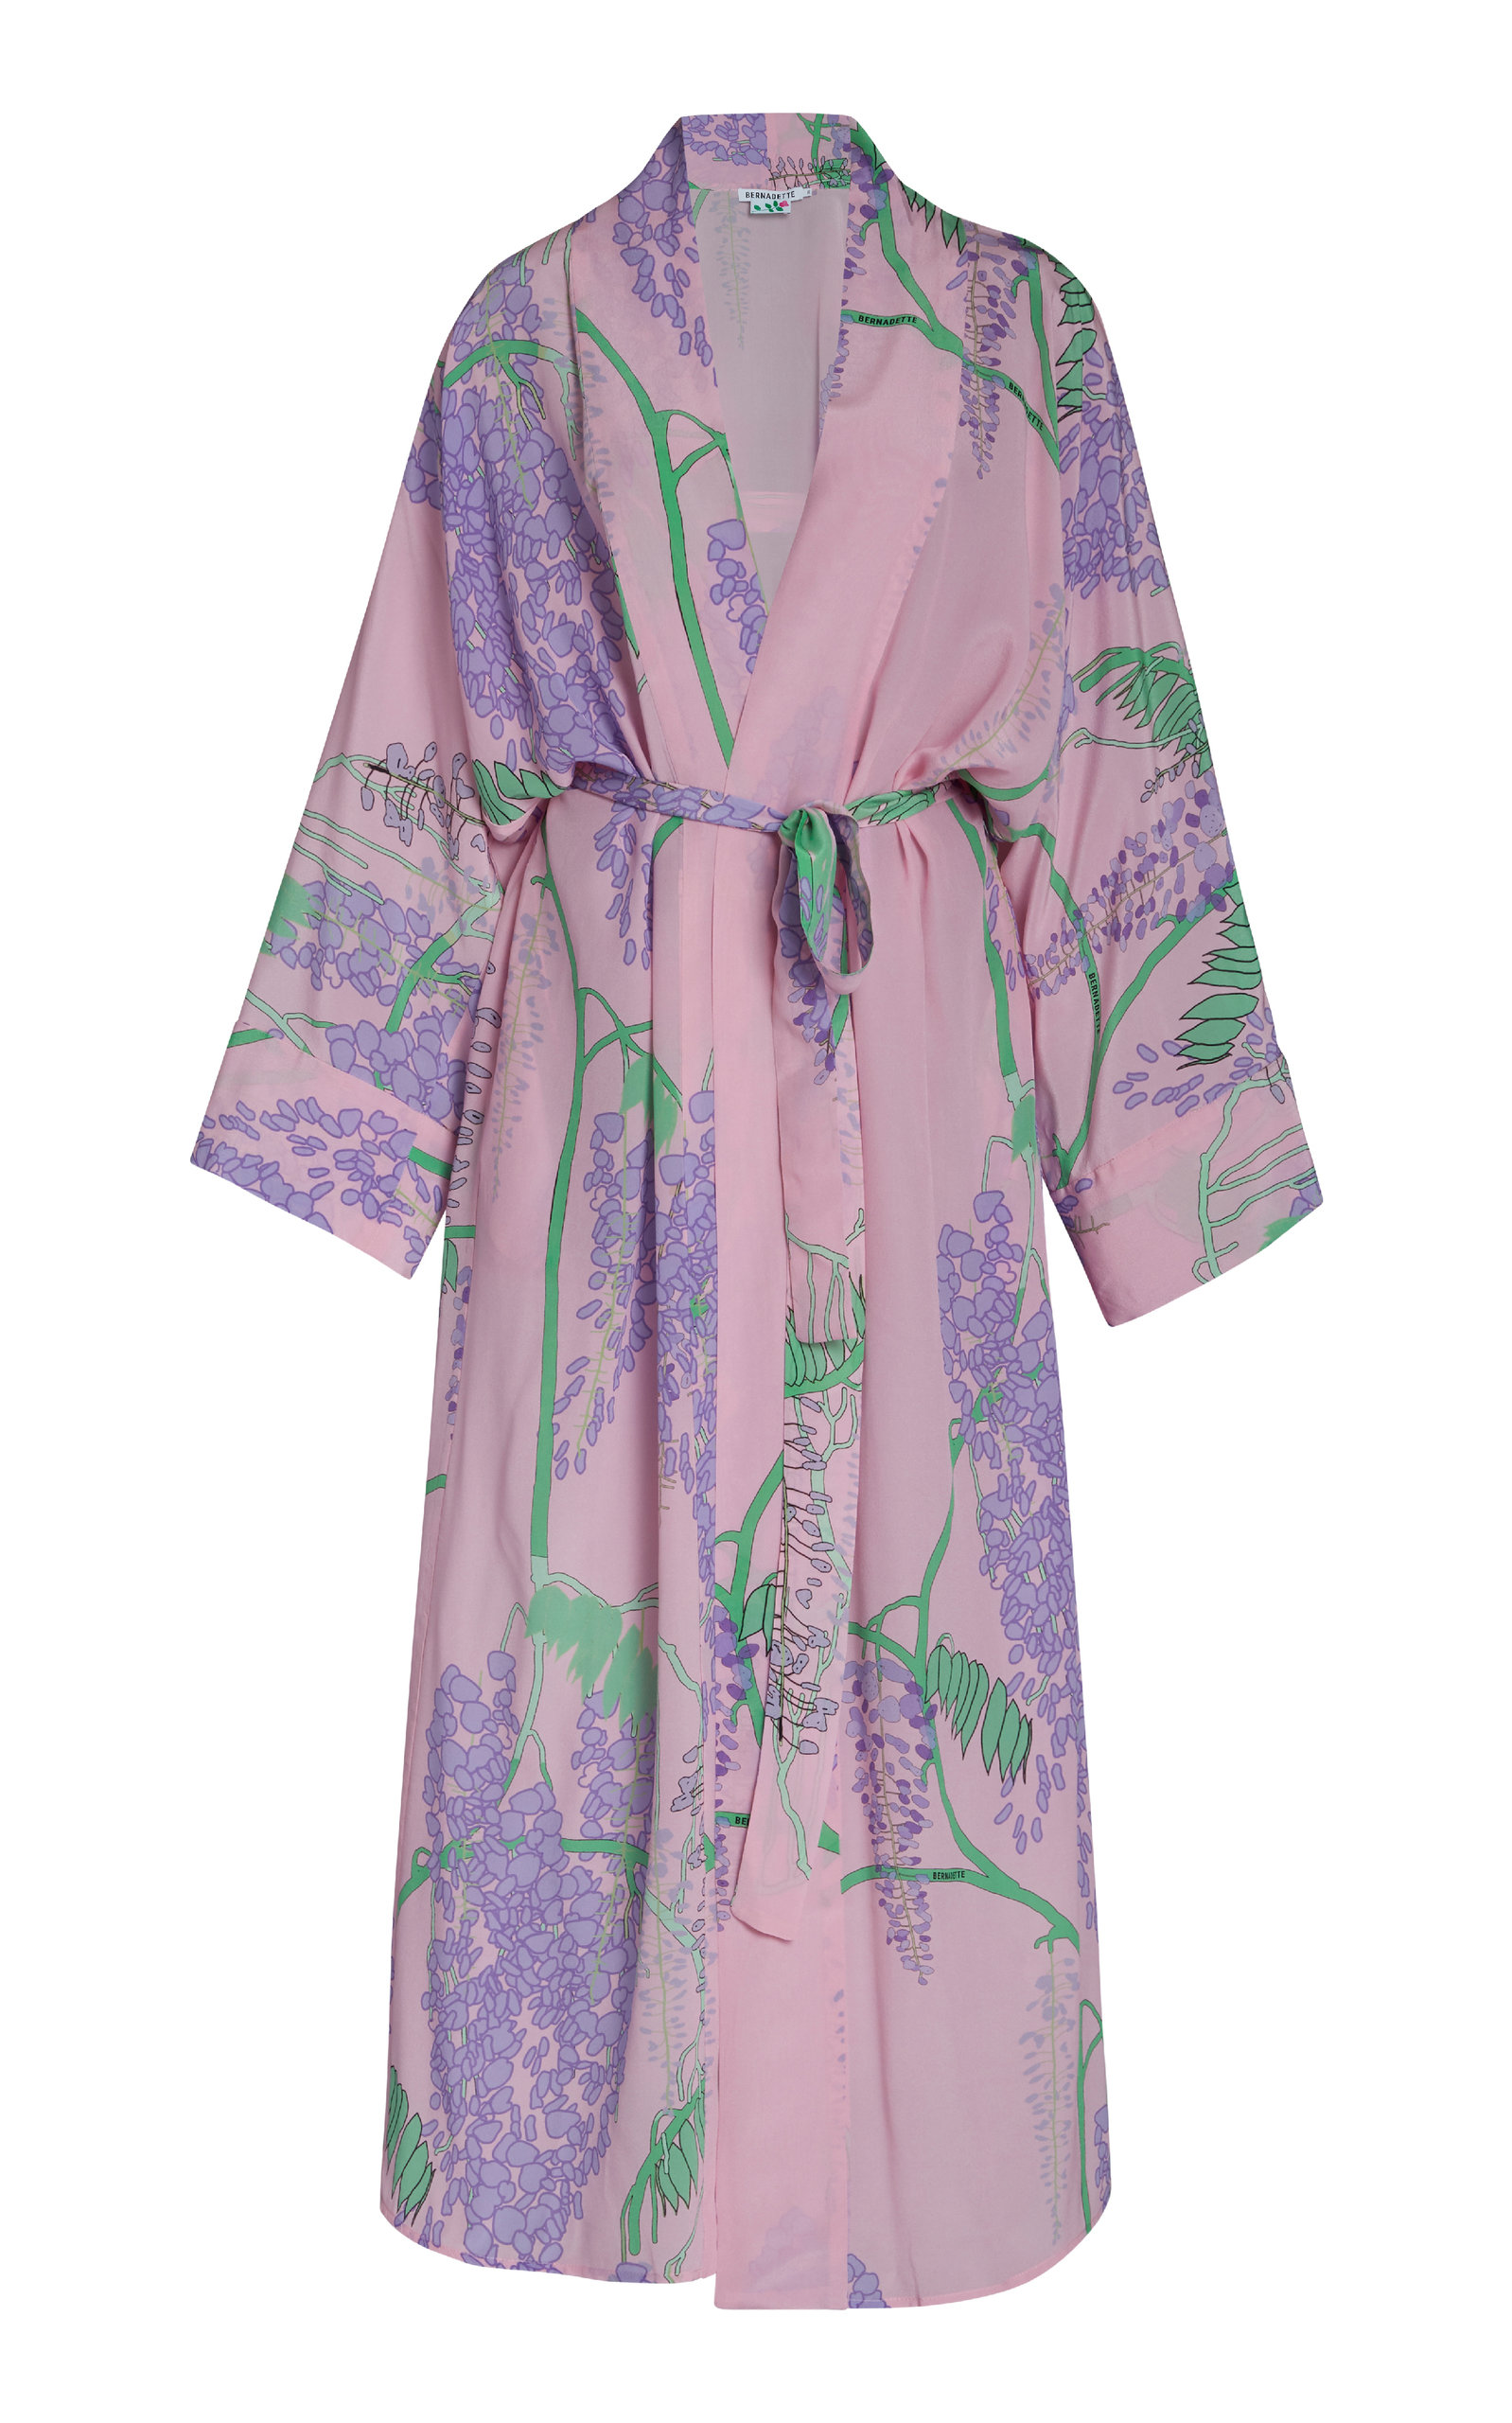 Buy Bernadette Antwerp Peignoir Silk Crepe De Chine Kimono Dress online, shop Bernadette Antwerp at the best price